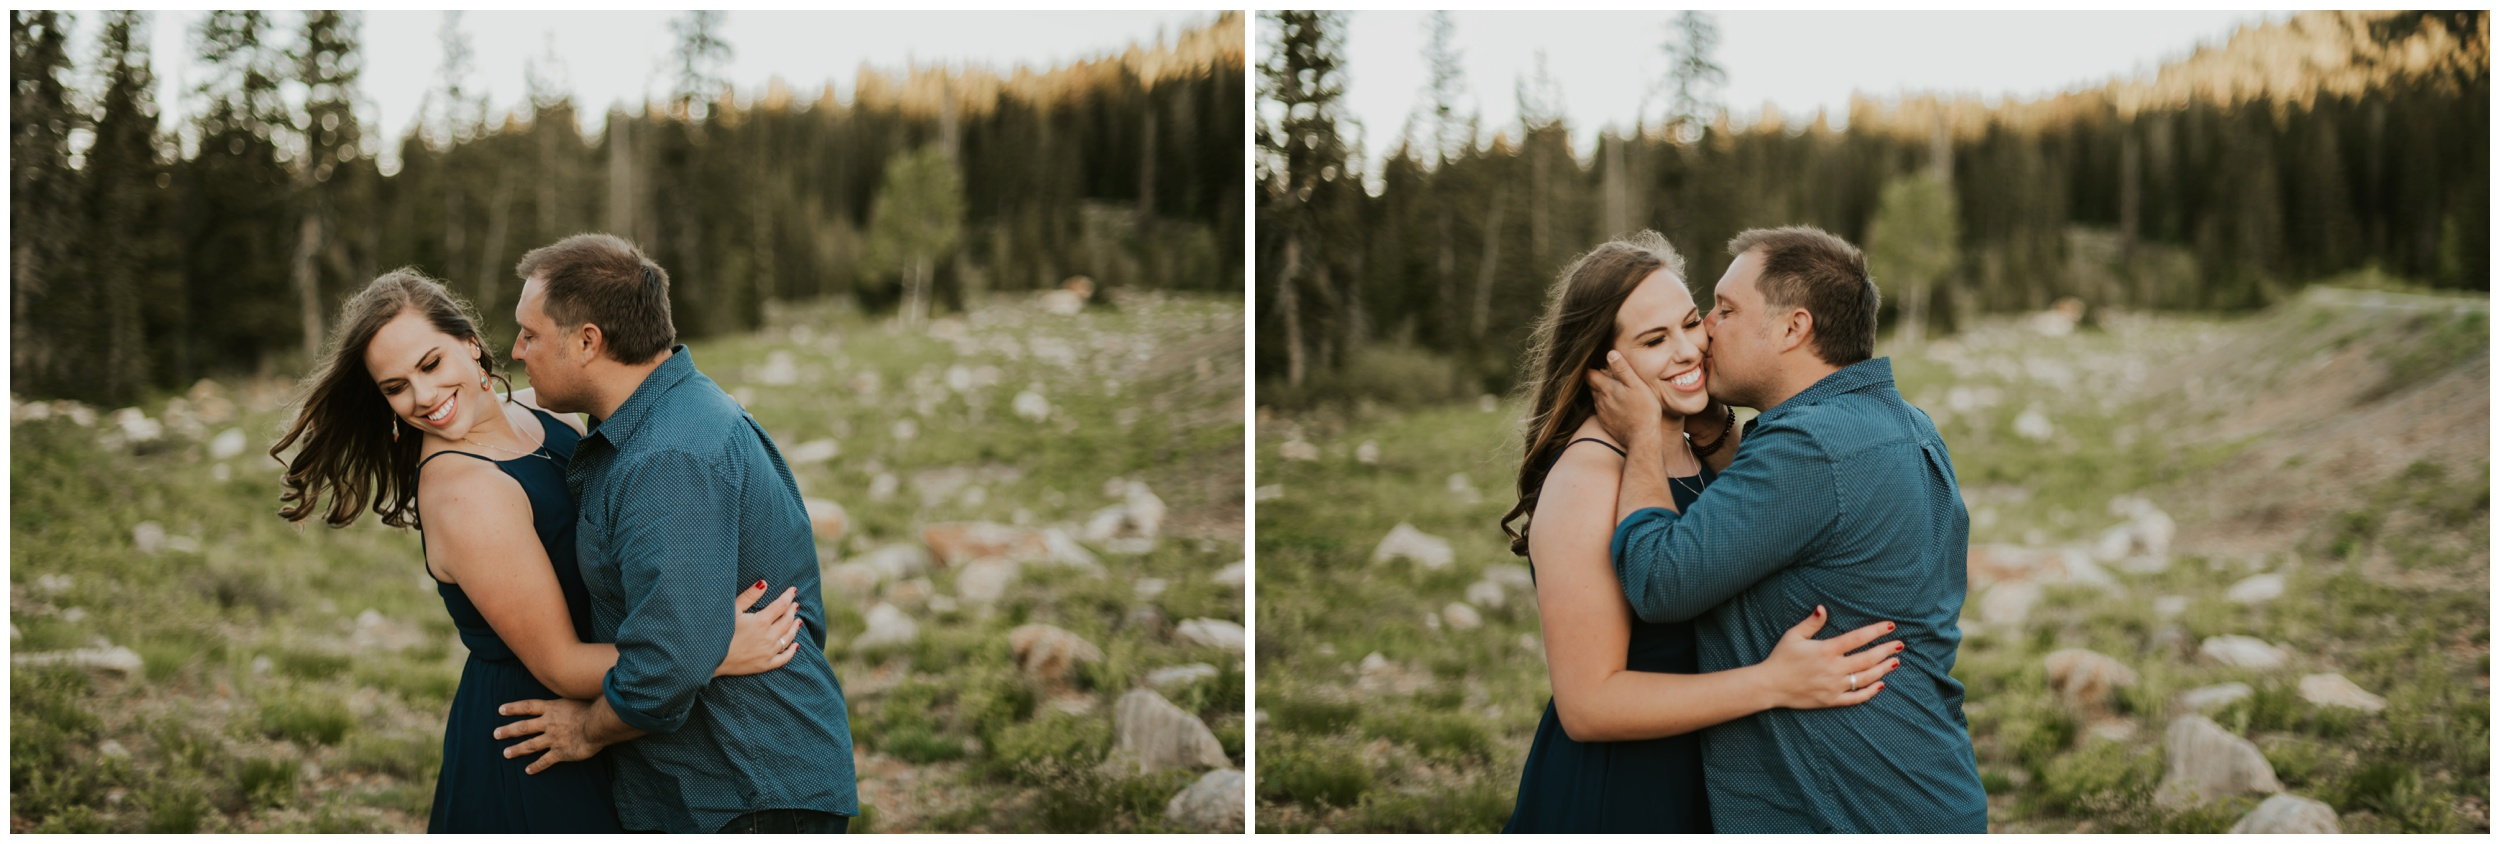 engagement photography rivers and roads photography - Logan utah